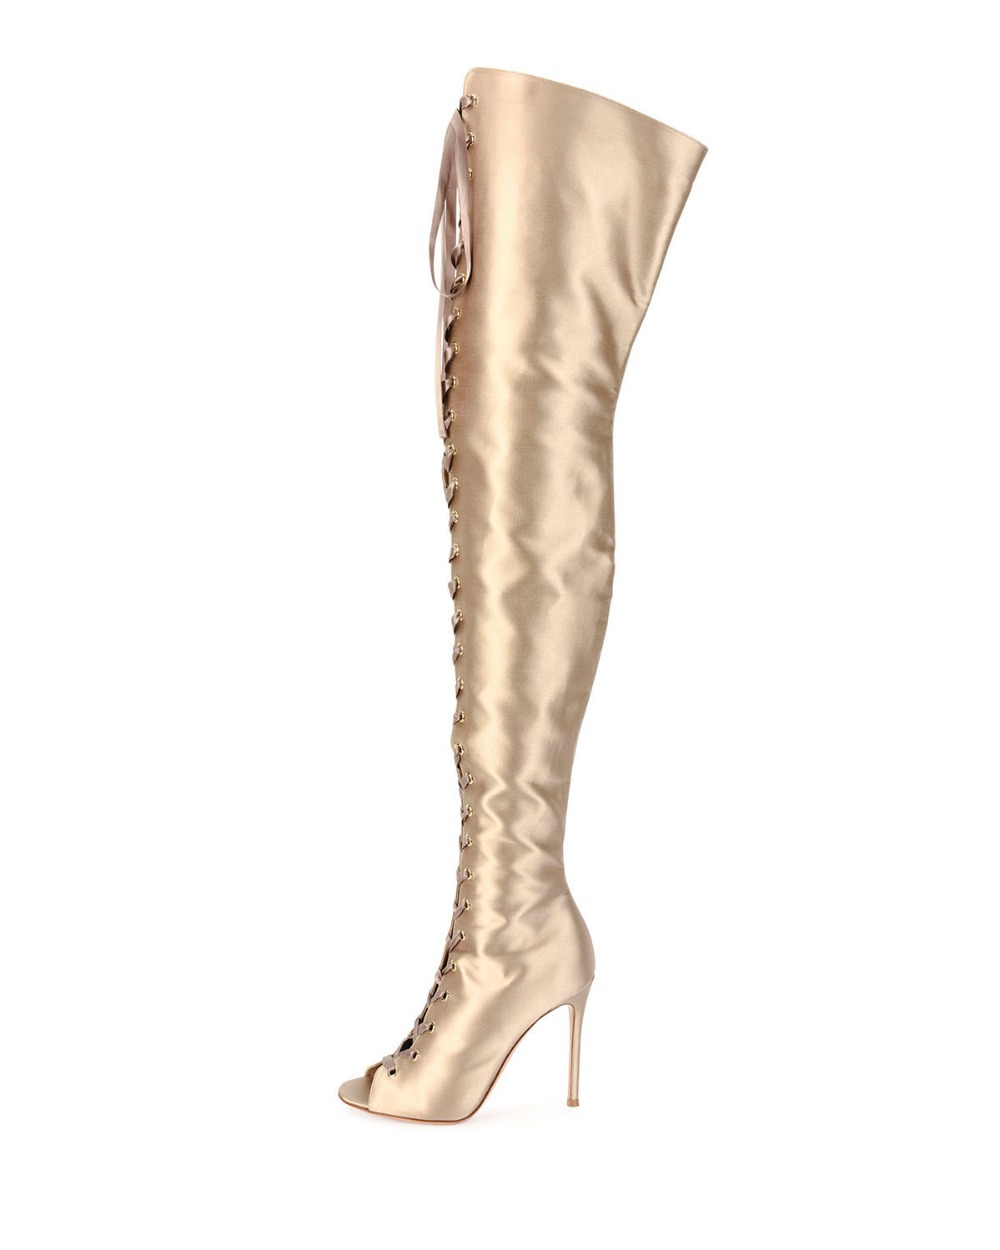 newest gold long boots 2018 spring autumn lace up thigh high boots women peep toe sexy high heels over the knee boots cut-outs newest pointed toe light blue denim high heels boots woman sexy thigh high boots cut outs gladiator boots 2017 thin heels boots